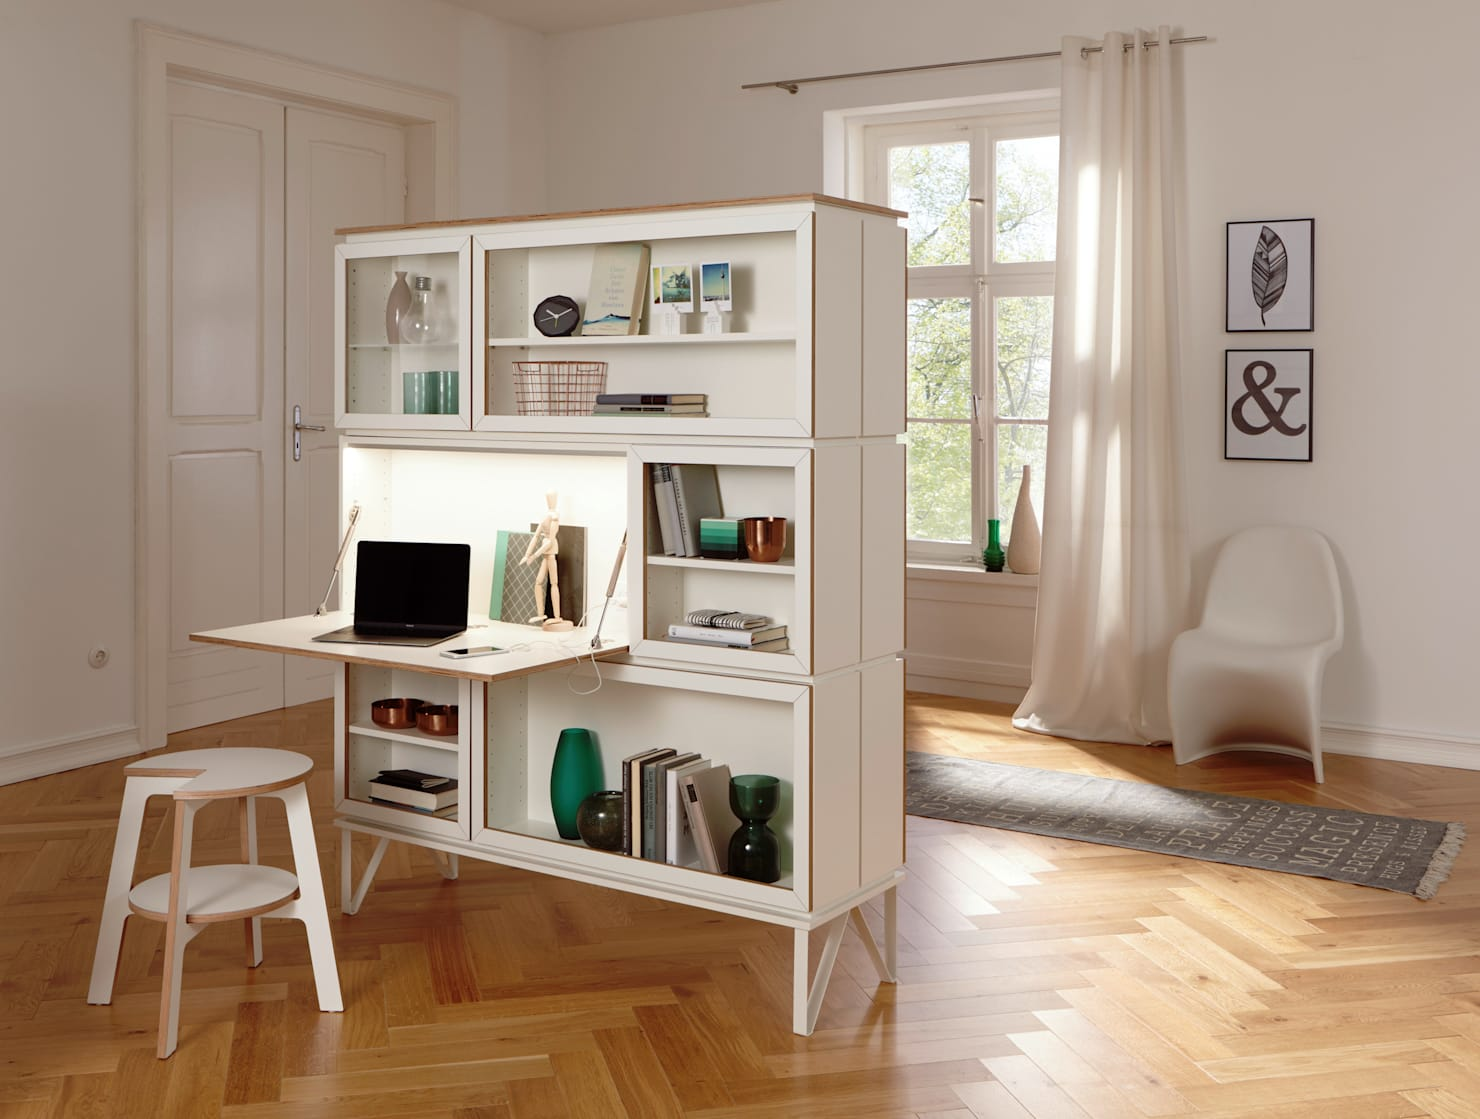 10 pieces of furniture that EVERY small home needs